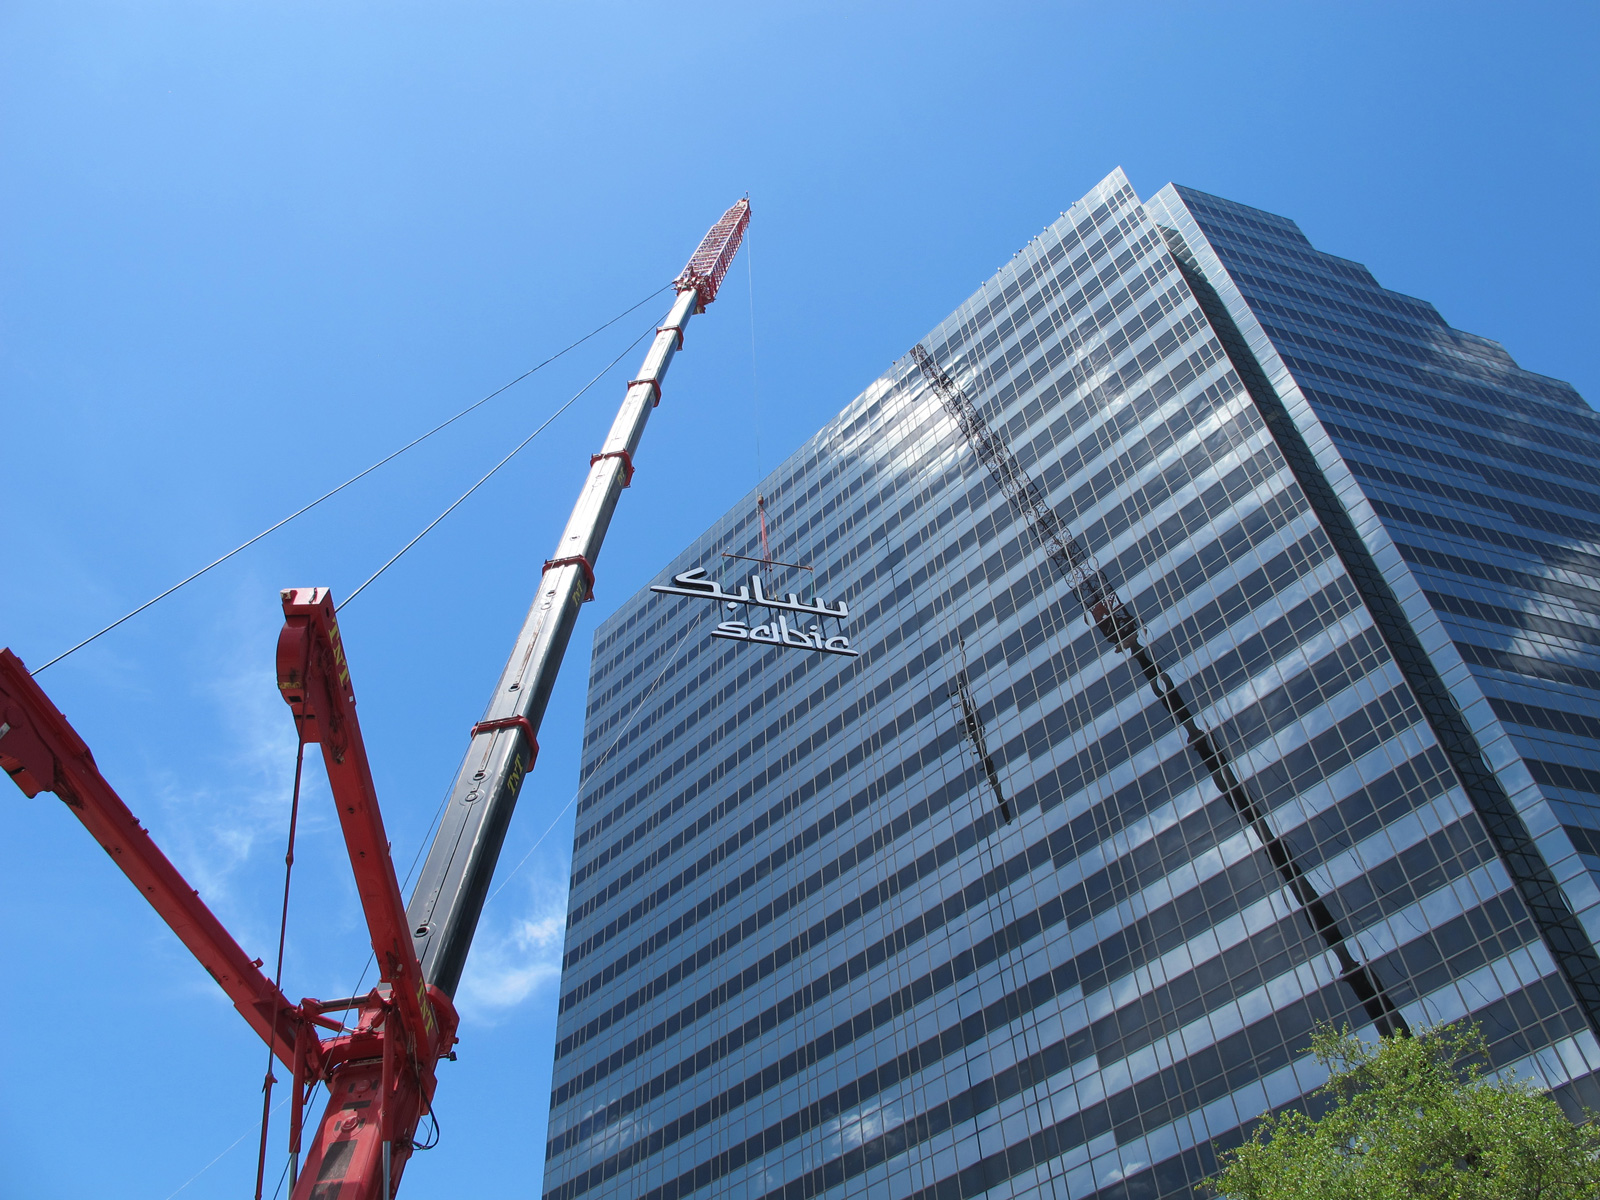 View from ground of crane lifting grand scale face-illuminated channel letters to roof of office tower.